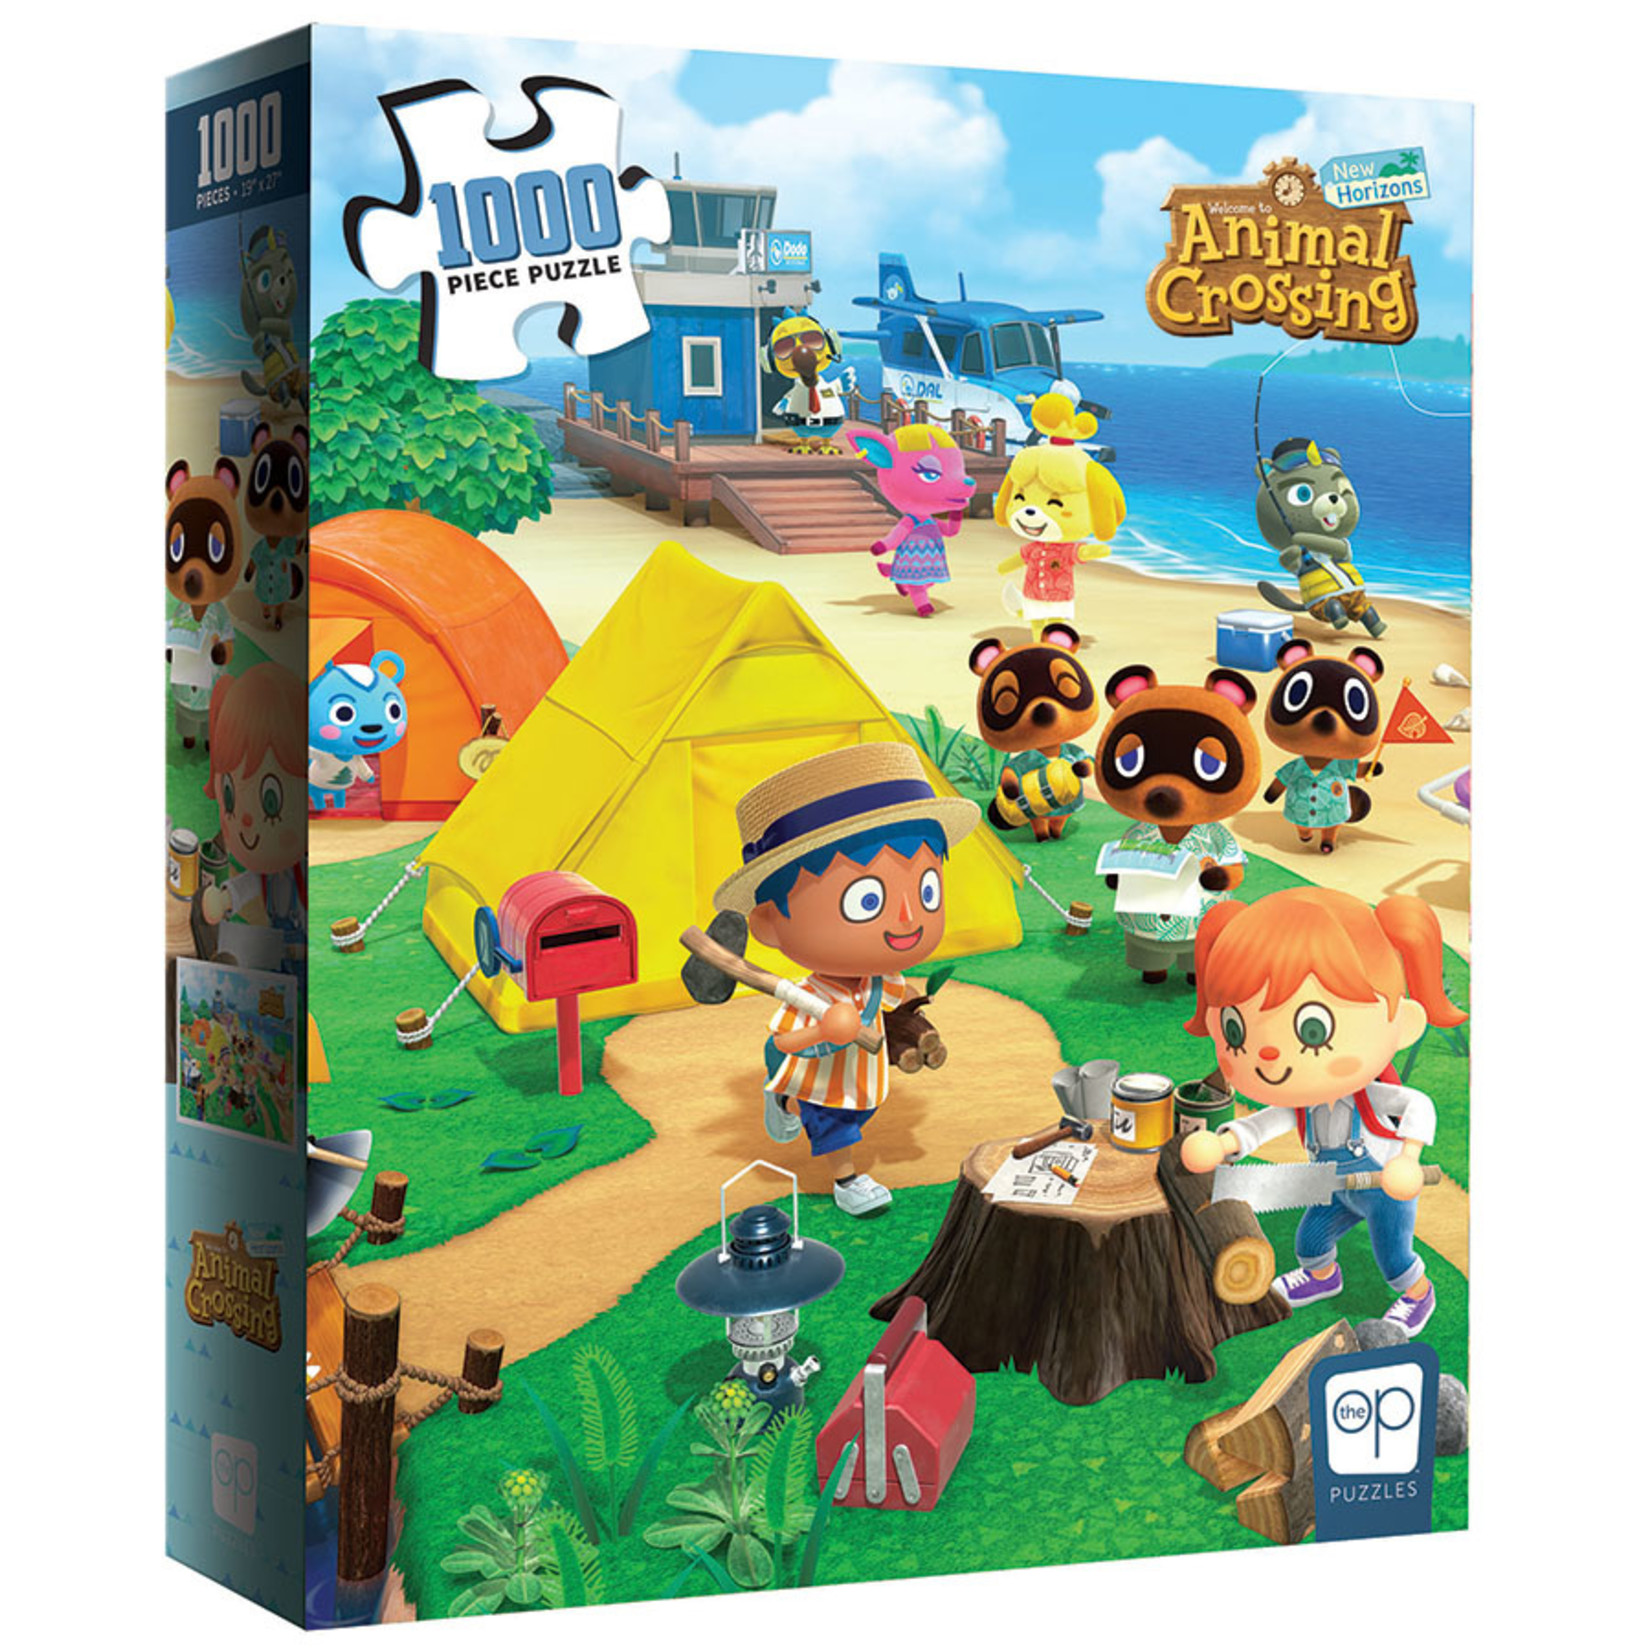 Animal Crossing - New Horizons - Welcome to Animal Crossing 1000pcs Puzzle